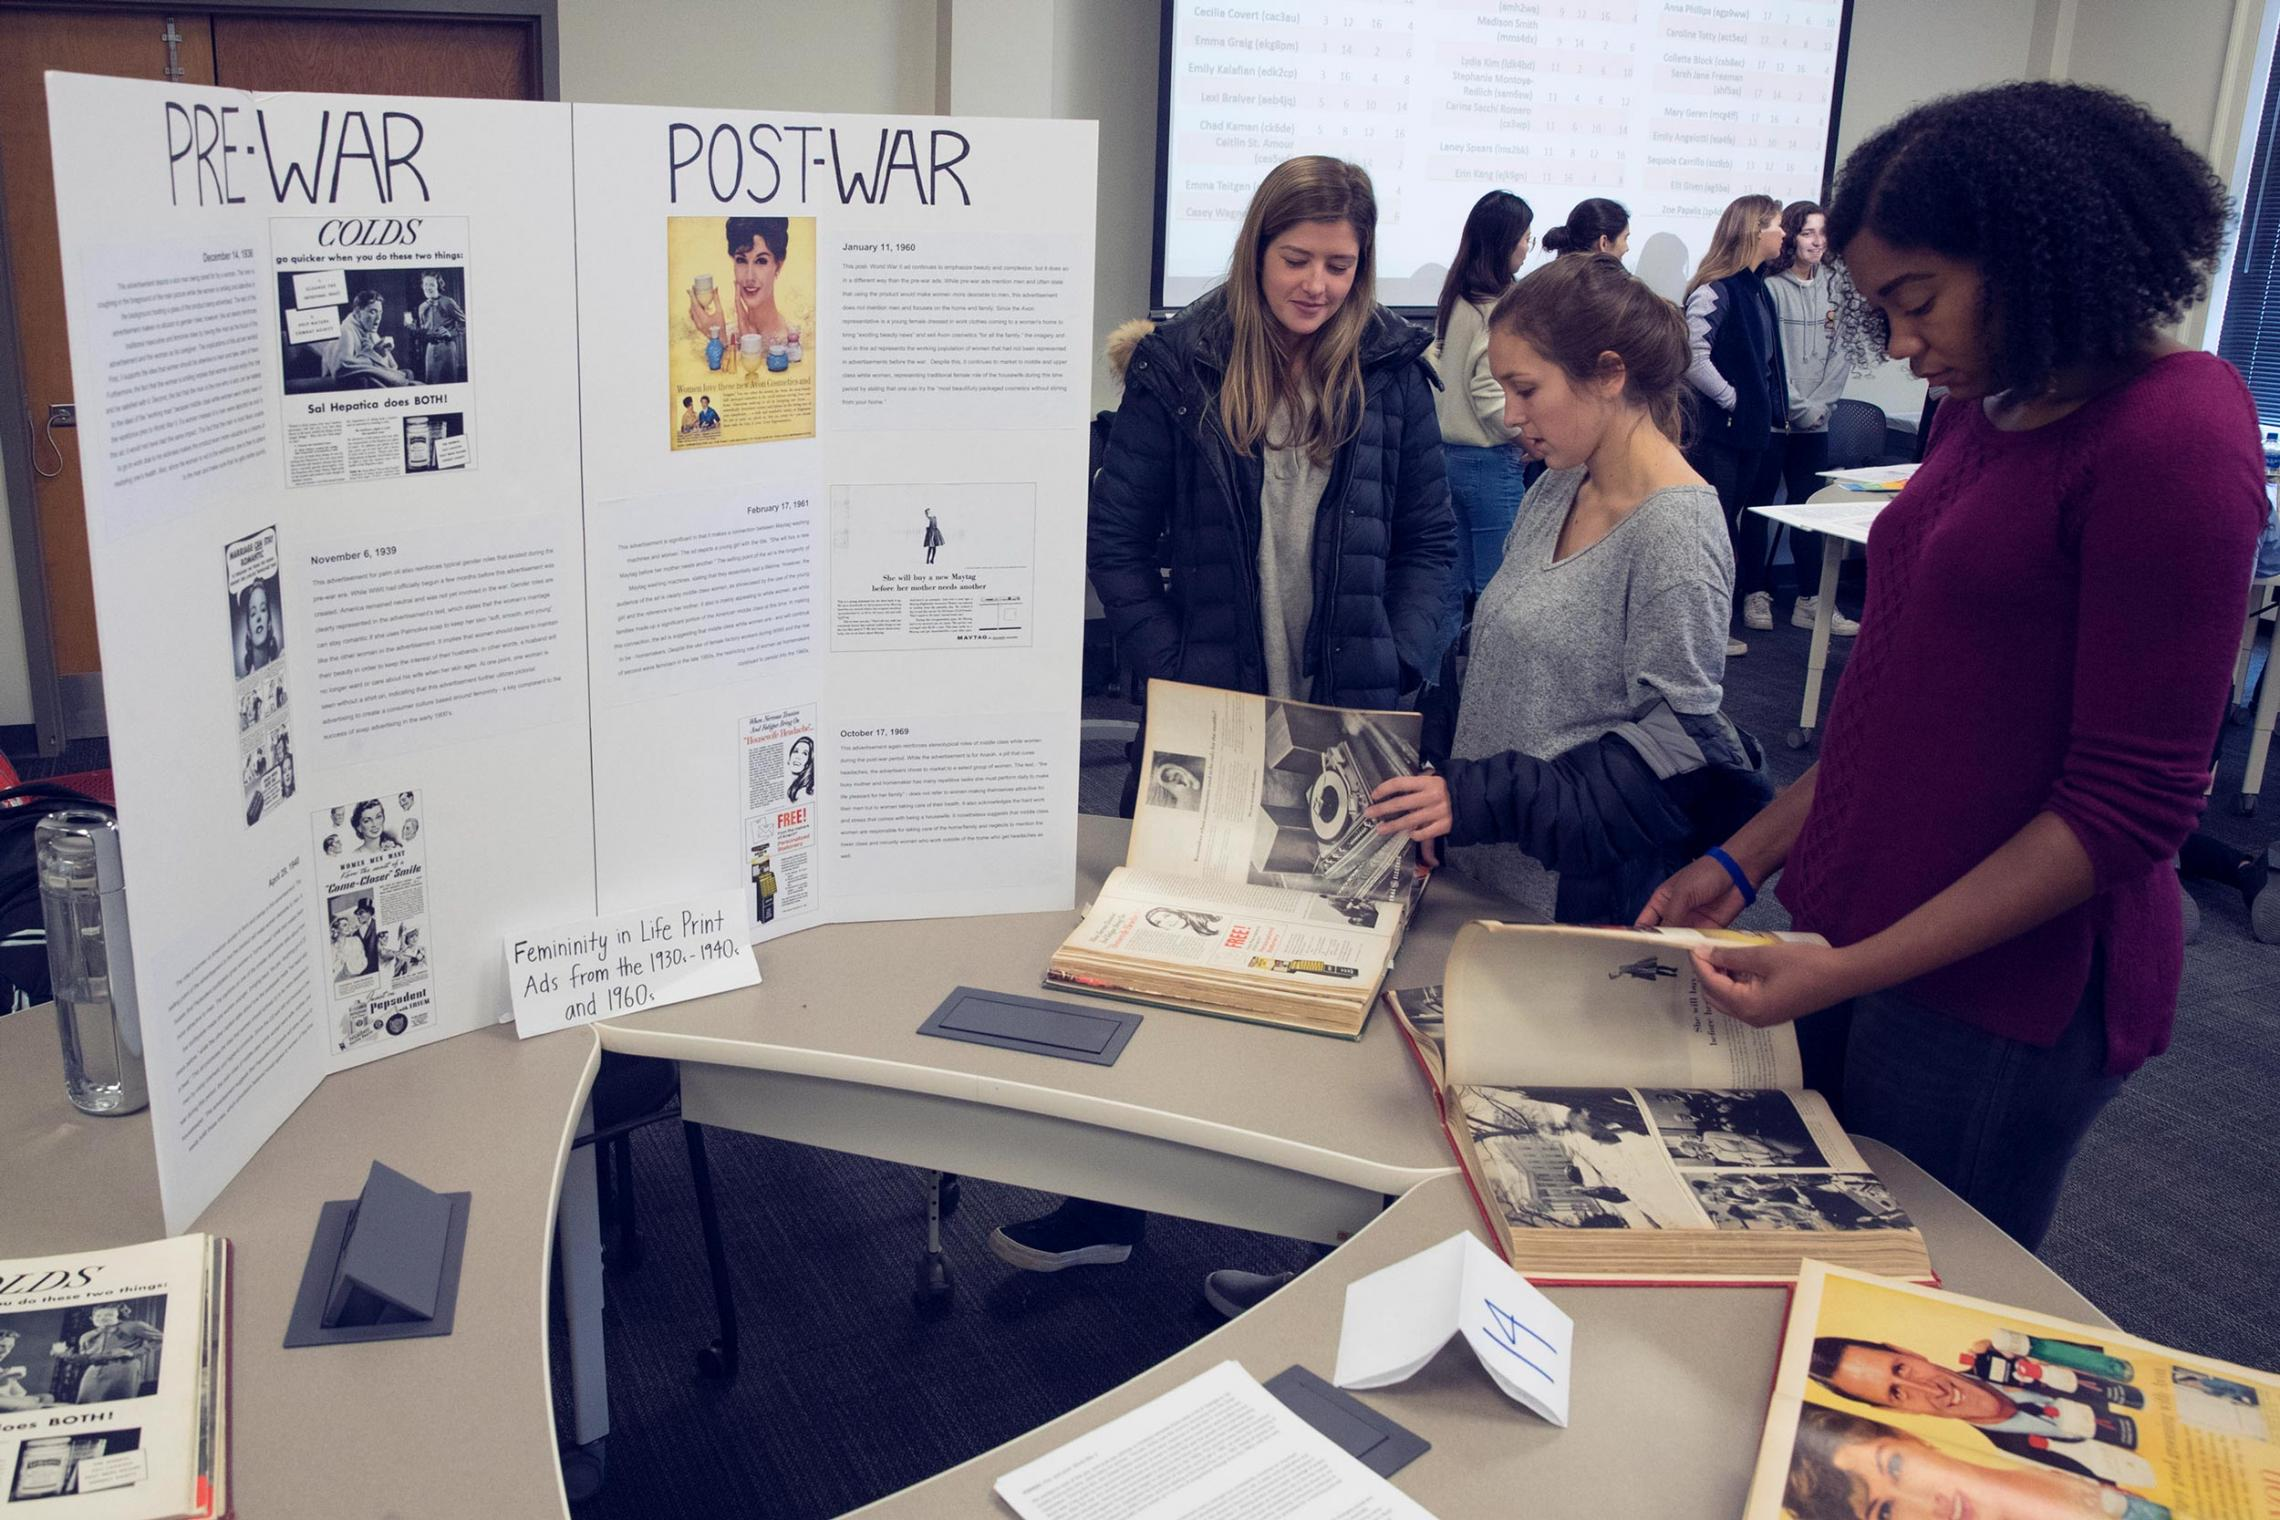 For final projects, students were charged with exploring the social consequences of media change – and making museum-style displays of their findings.